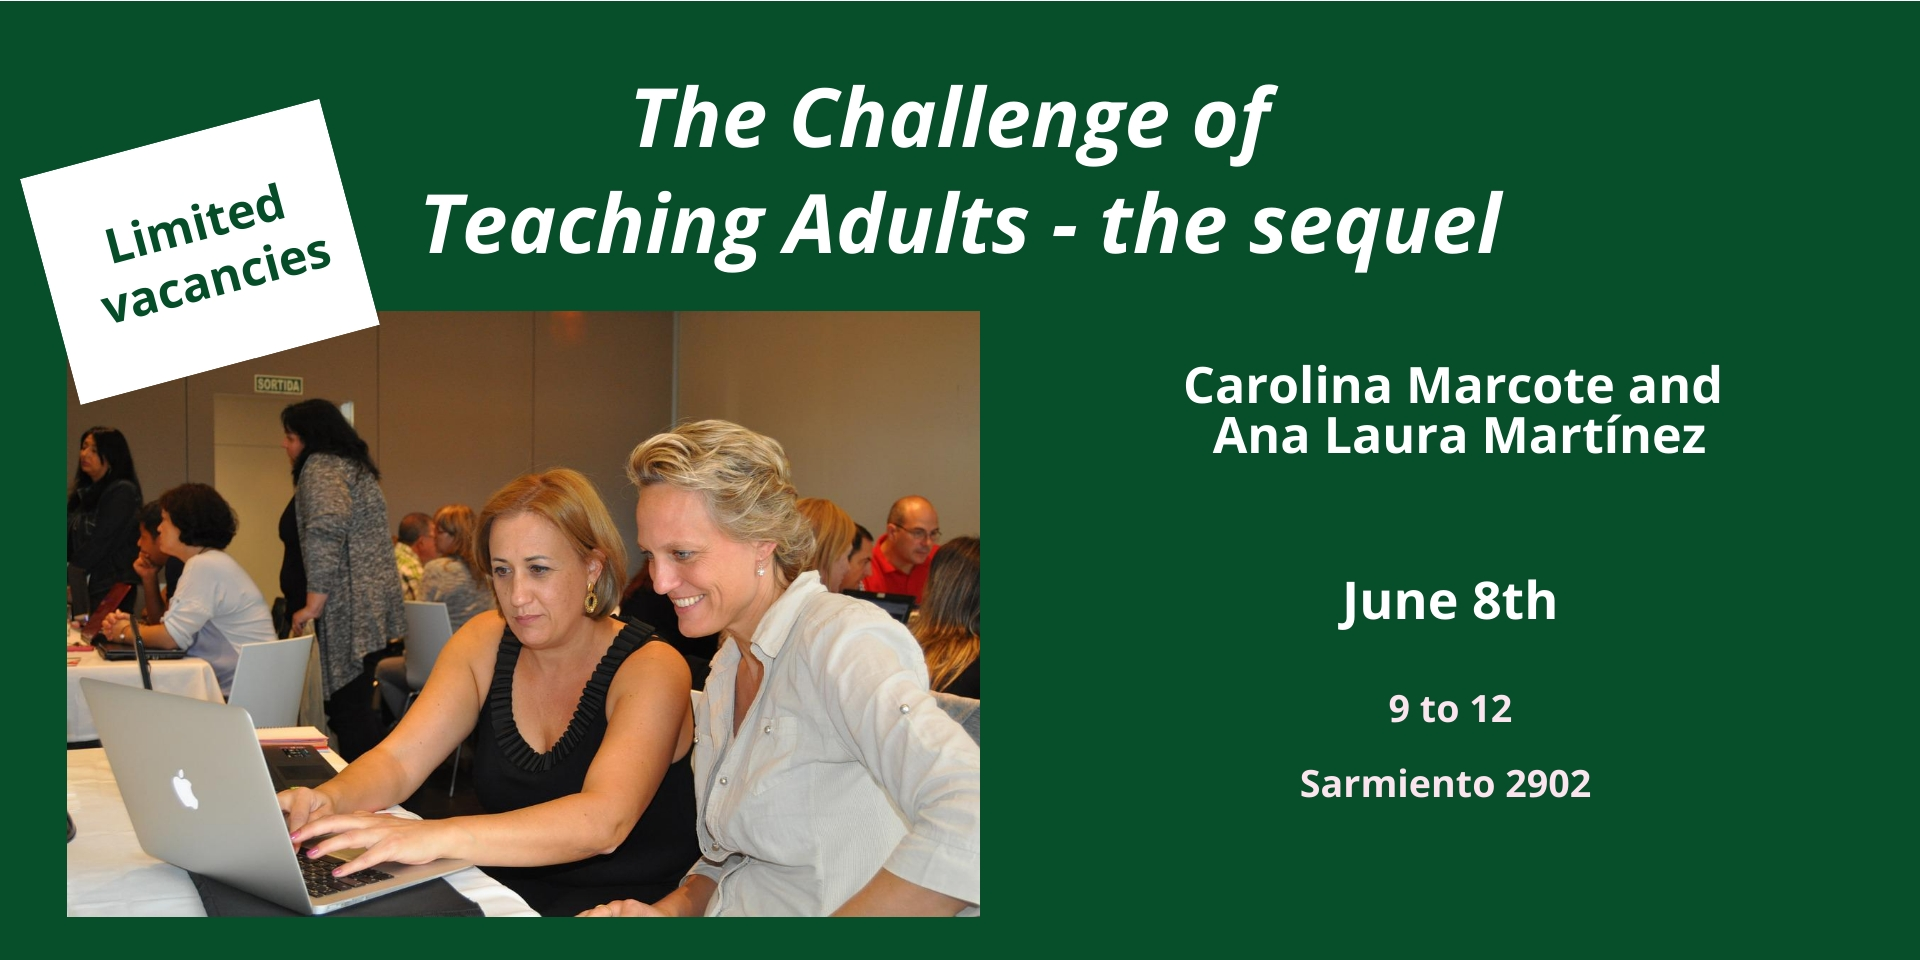 The Challenge of Teaching Adults – the sequel